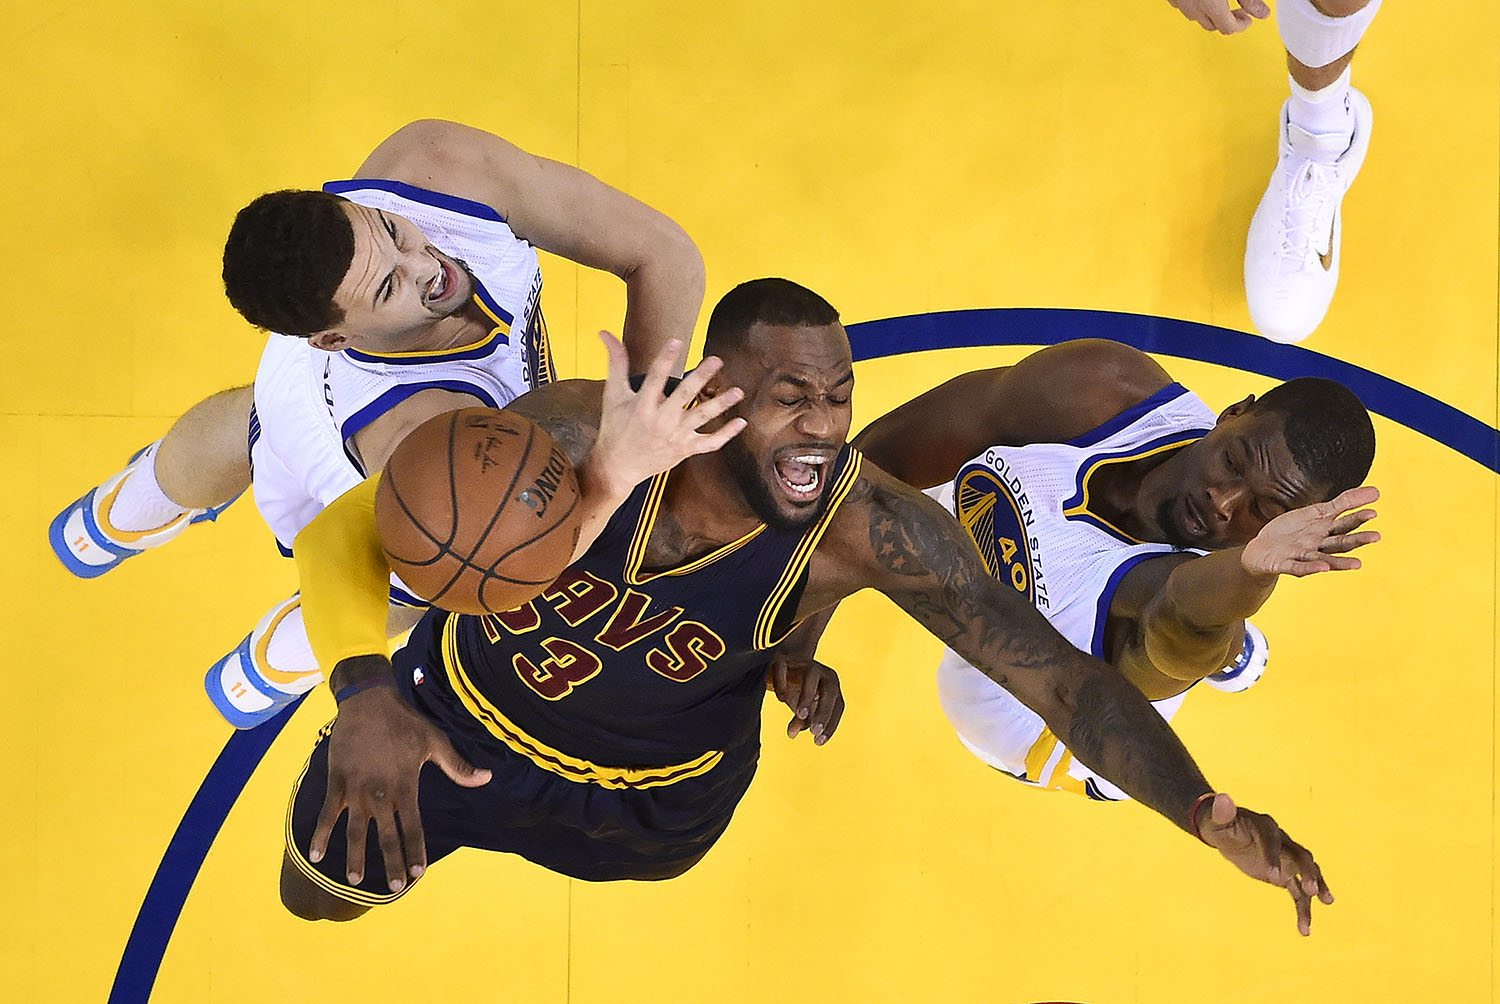 Cleveland Cavaliers forward LeBron James, center, loses the ball between Golden State Warriors guard Klay Thompson, left, and forward Harrison Barnes during the first half of Game 1 of basketball's NBA Finals in Oakland, Calif., Thursday, June 4, 2015. The Warriors won 108-100 in overtime. (John G. Mabanglo/EPA Pool via AP)